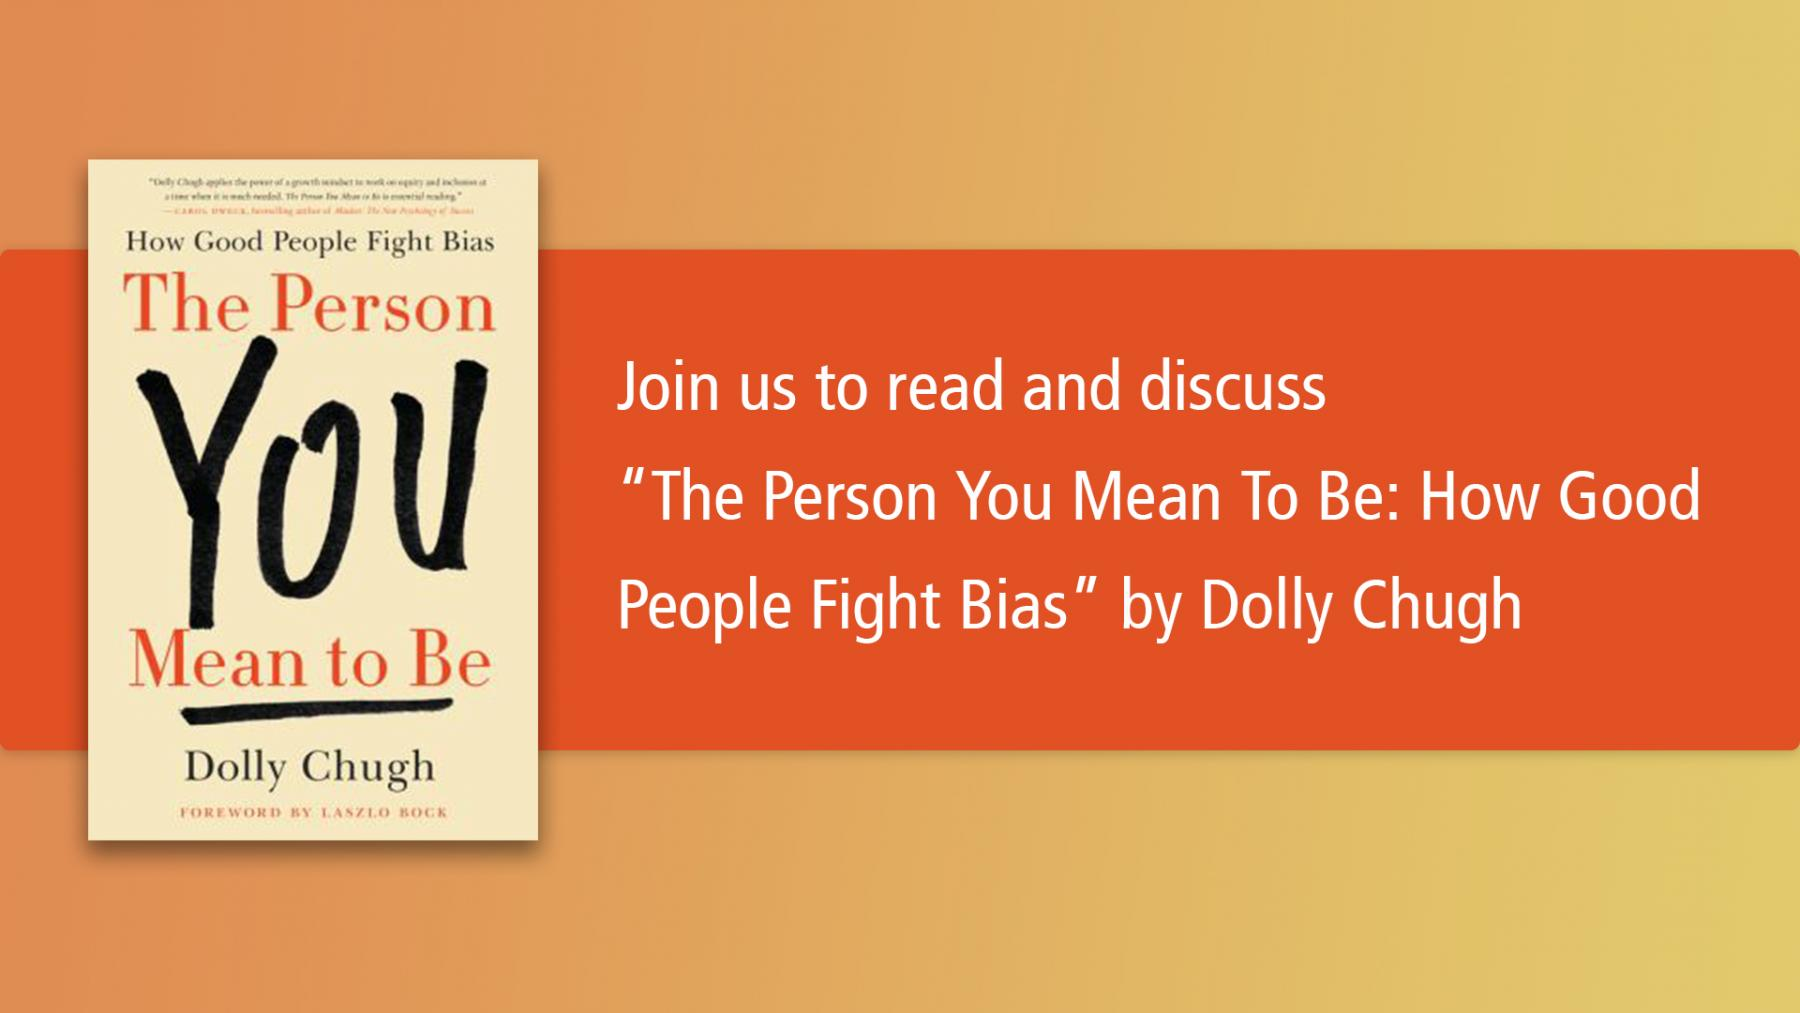 """Image shows the cover of book """"How good people fight bias, The person you mean to be"""" by Dolly Chugh. Next to it is text """"Join us to read and discuss"""" and the book title and author."""